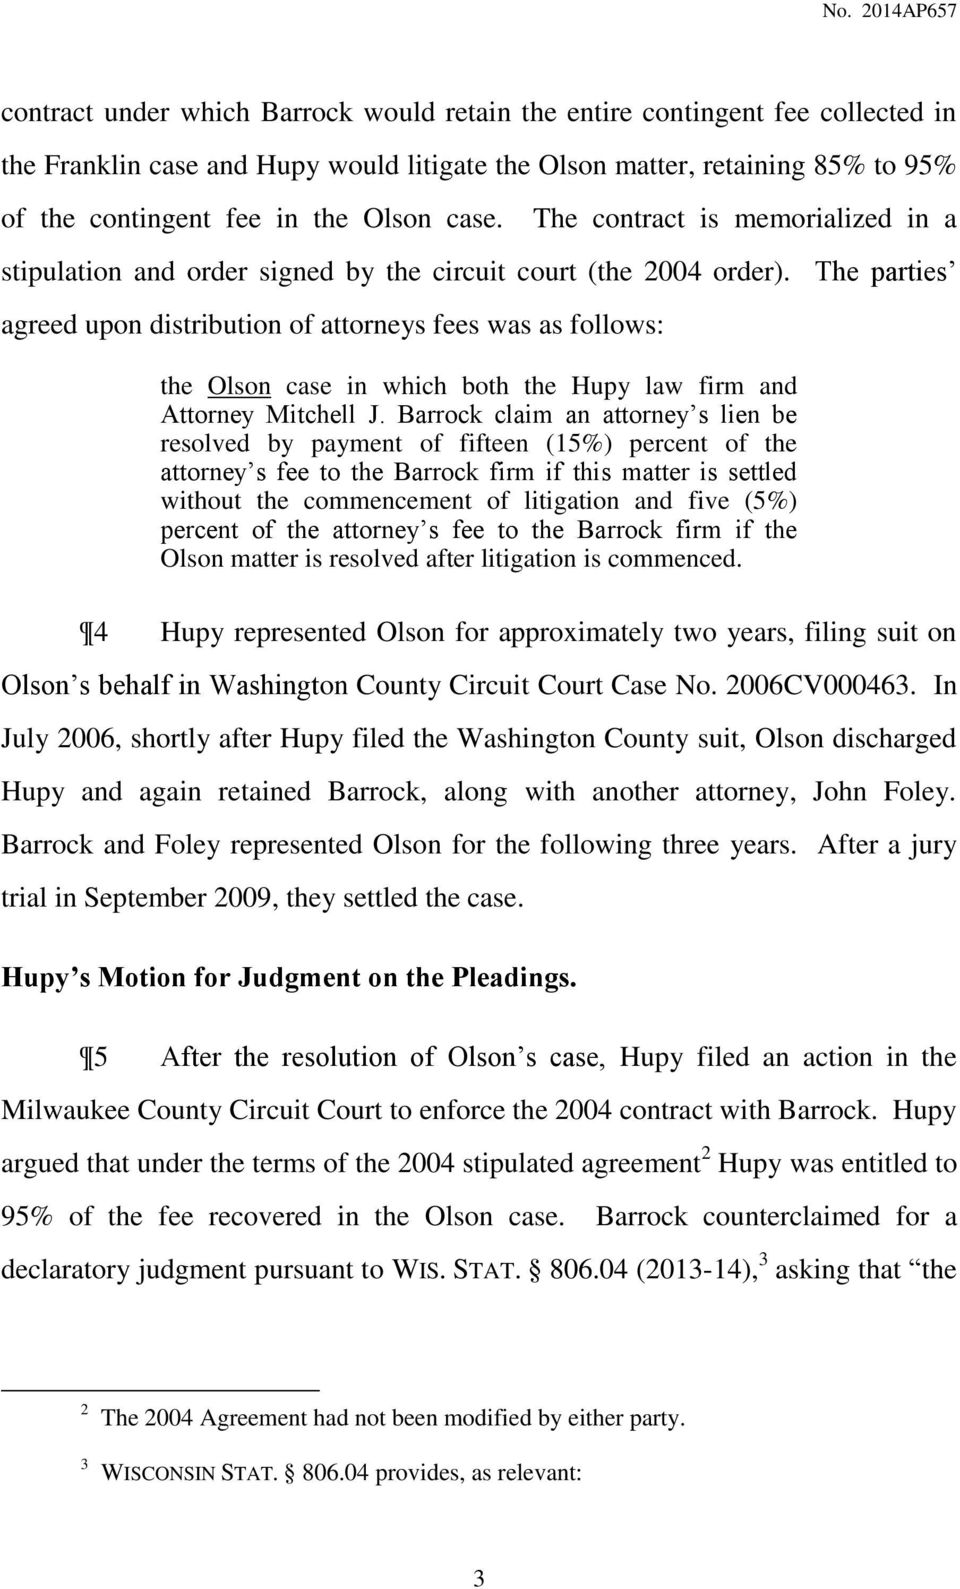 The parties agreed upon distribution of attorneys fees was as follows: the Olson case in which both the Hupy law firm and Attorney Mitchell J.